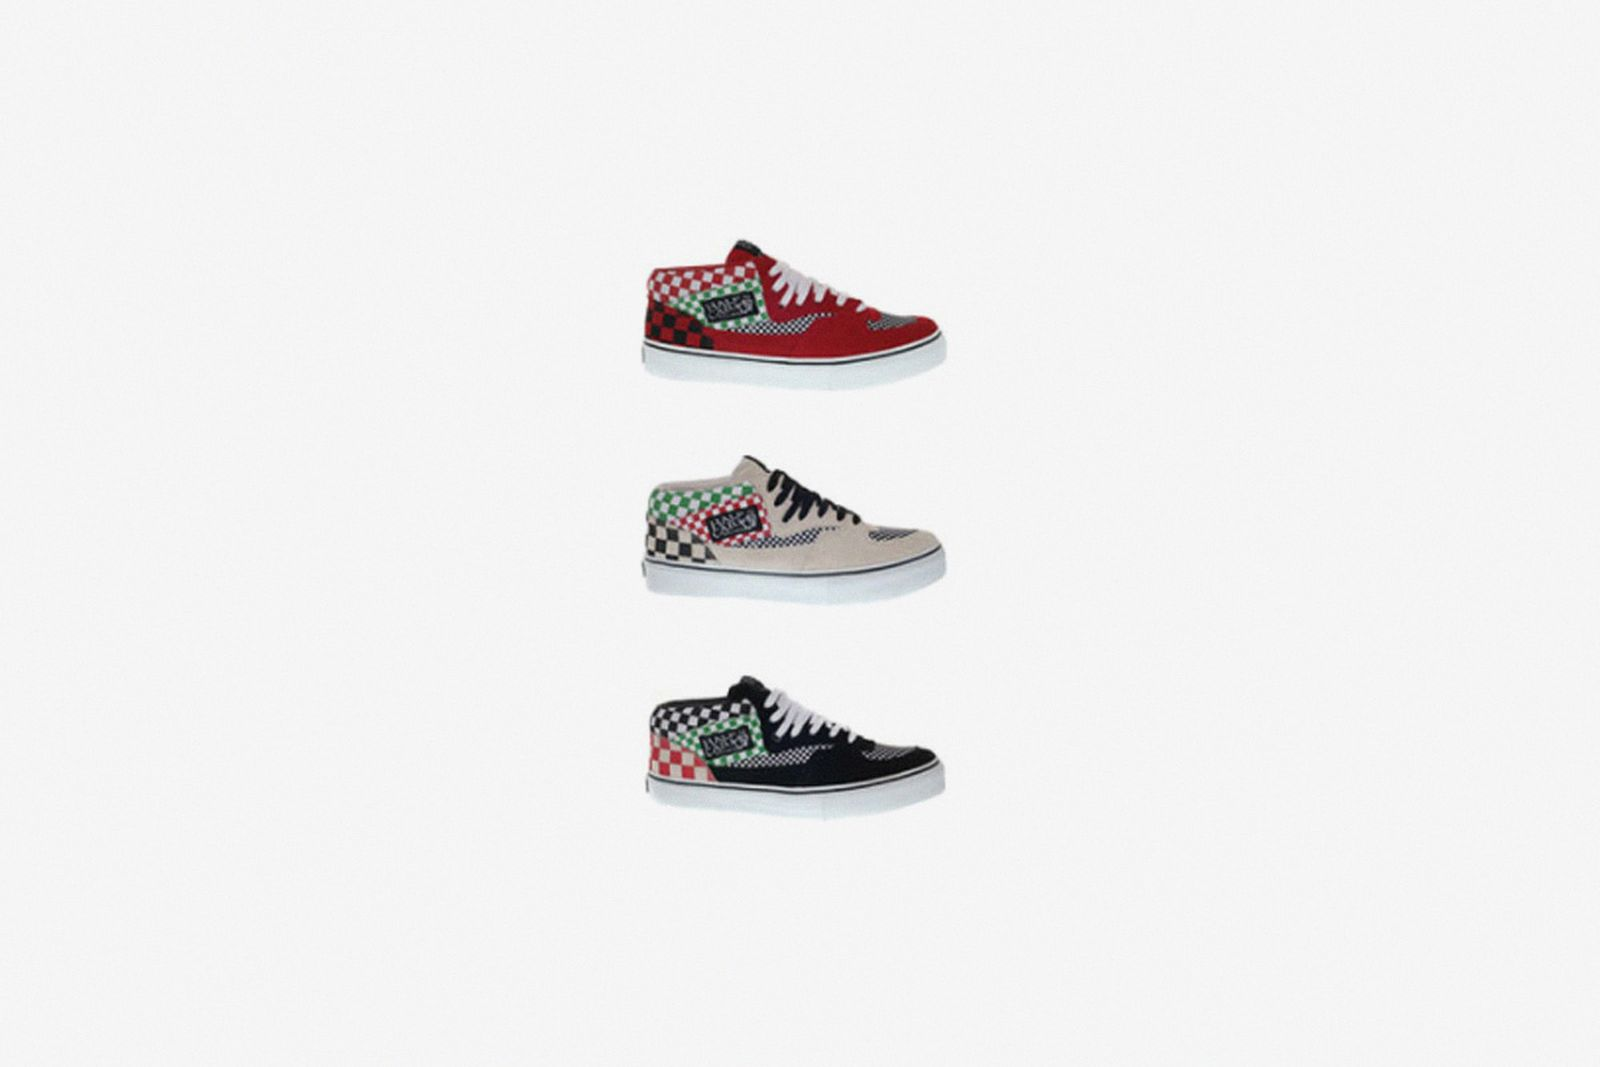 Supreme x Vans: A Full History of Collaborations